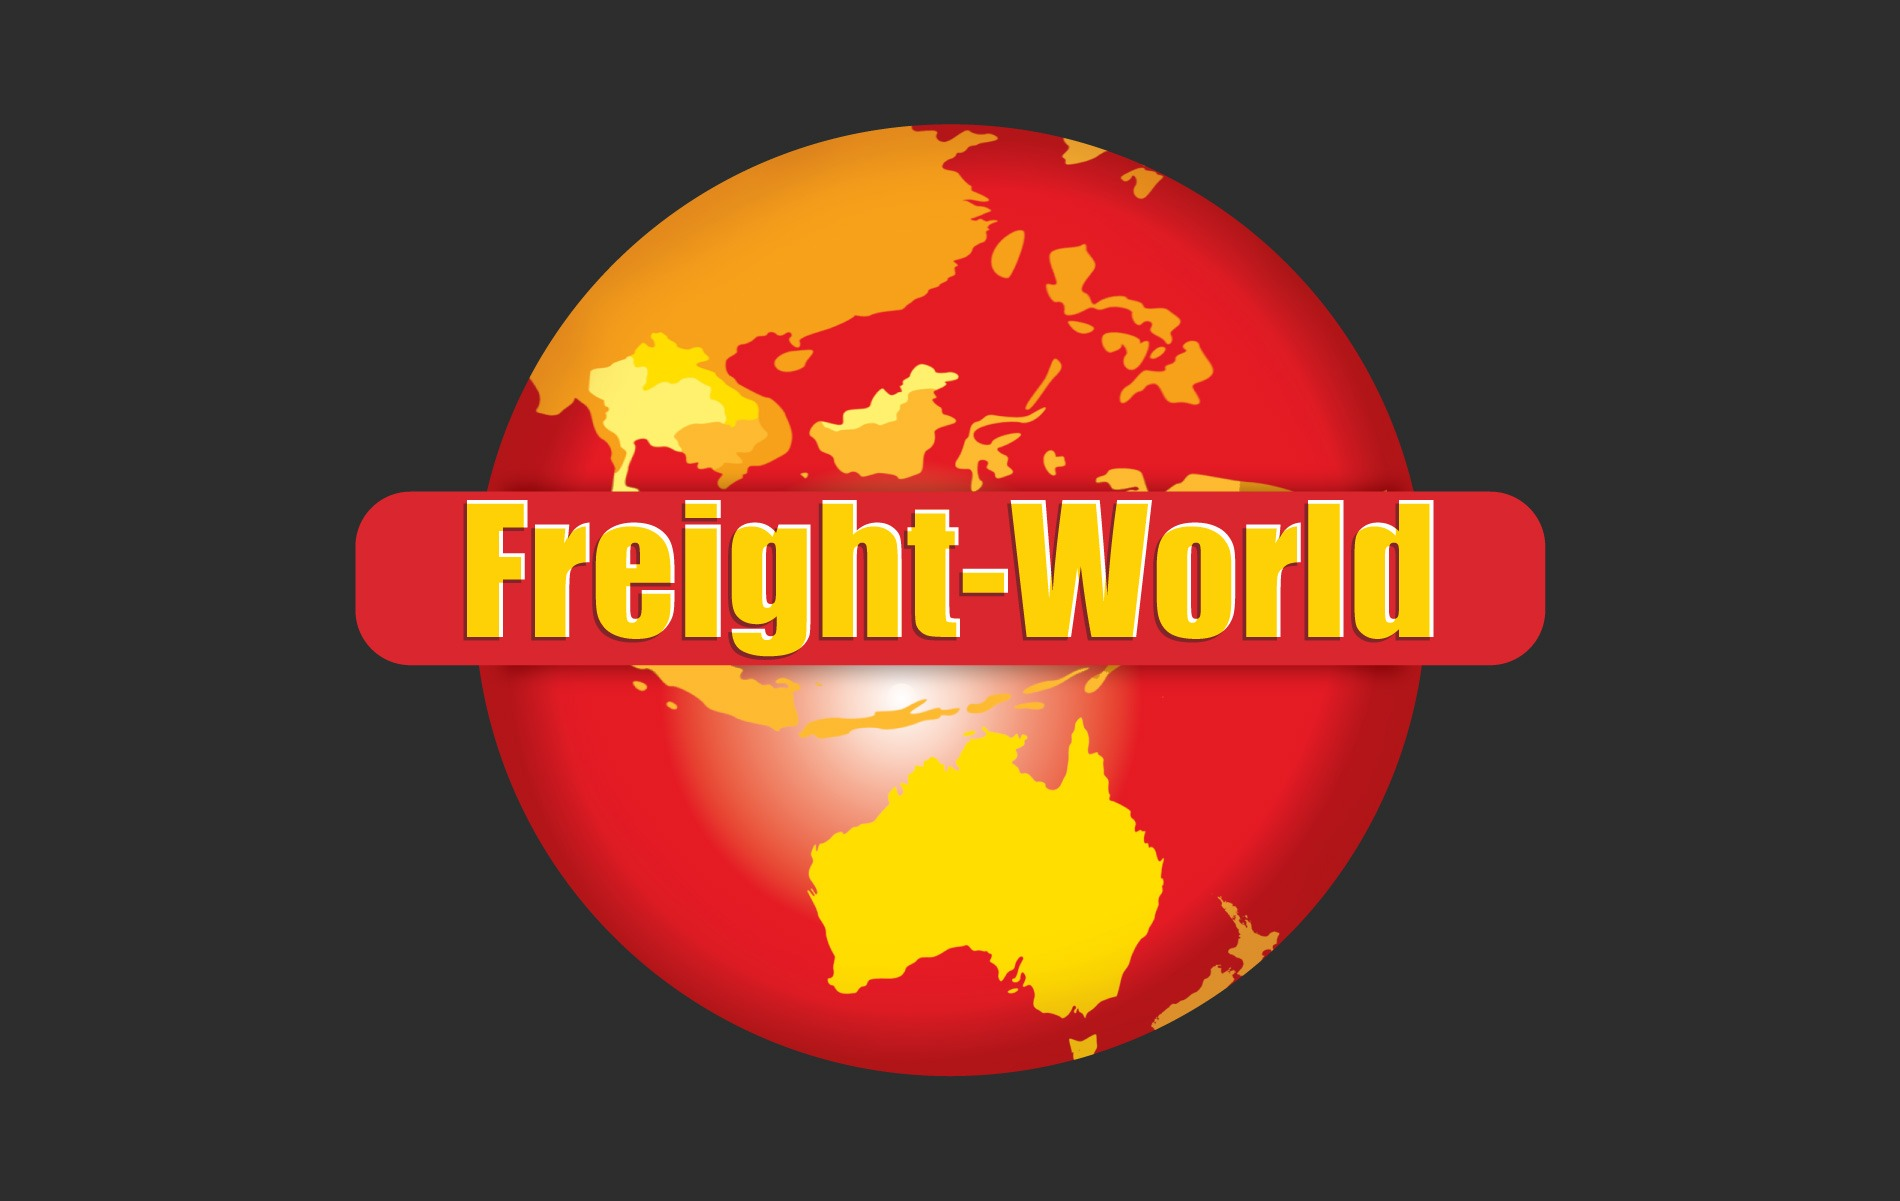 freight-world-logo-studio-tbac